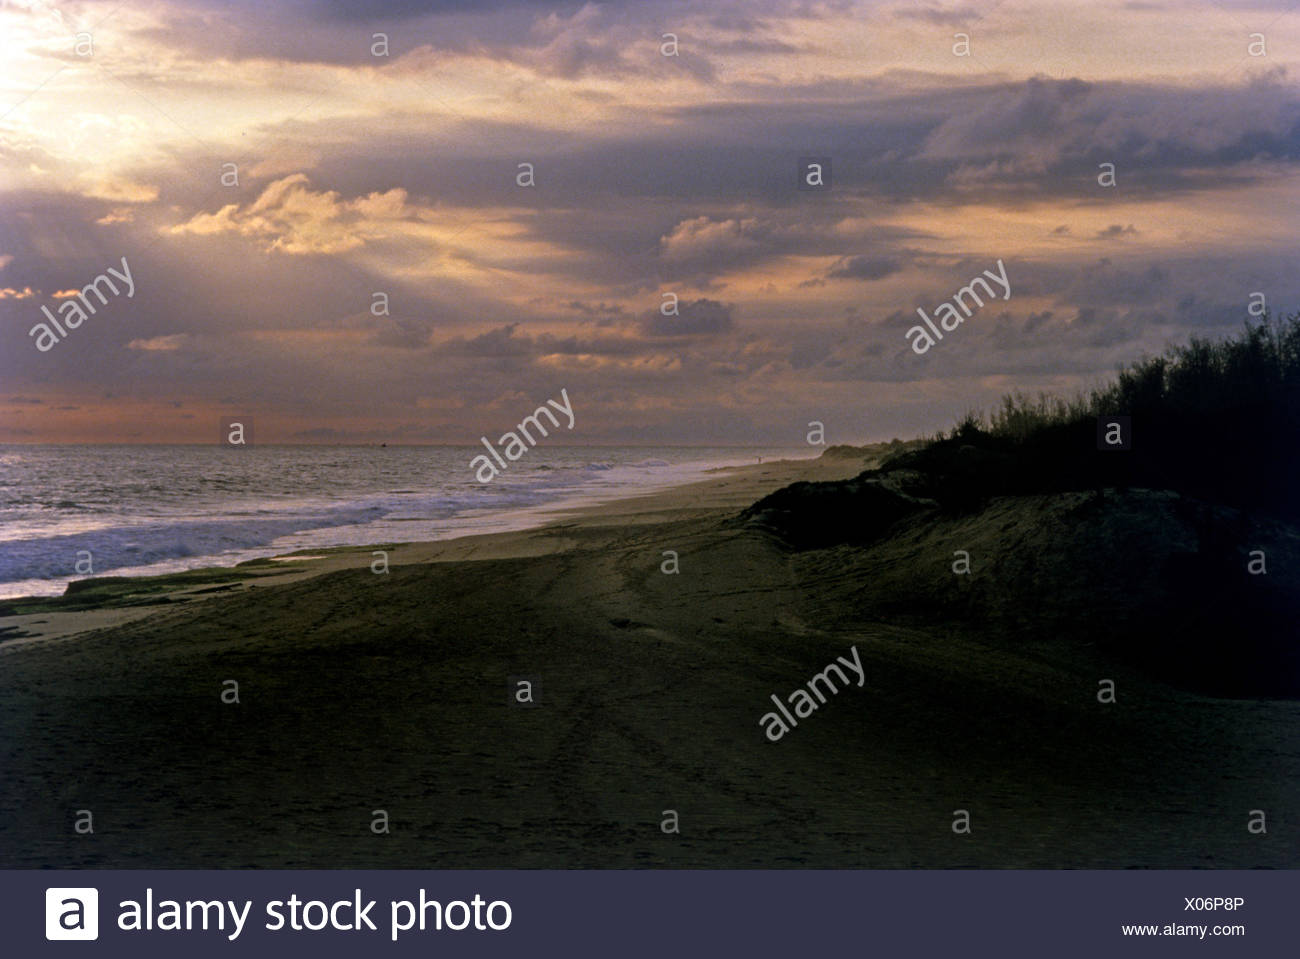 Tip of Indian subcontinent - Stock Image